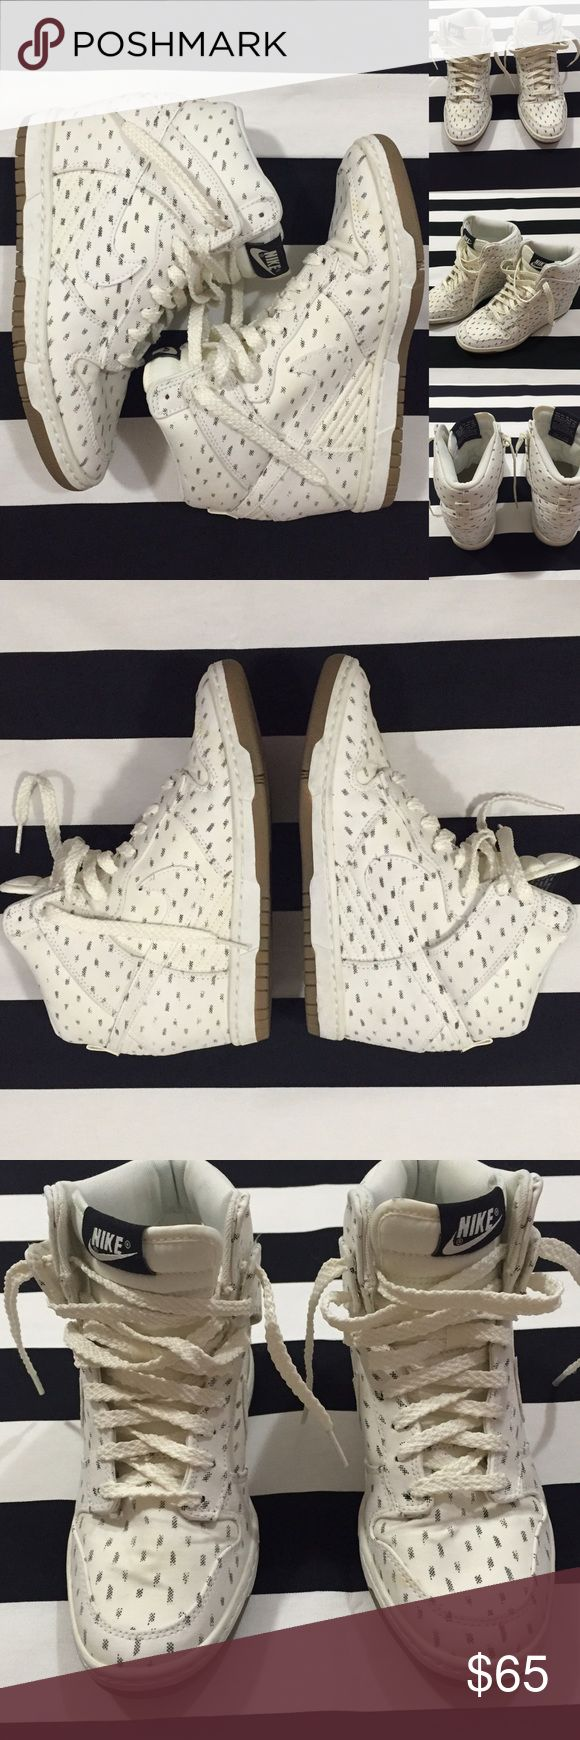 [Nike] Dunk Sky Hi women's wedge sneakers sz7.5 [Nike] Dunk Sky Hi women's wedge sneakers sz7.5 •🆕listing •good used condition •ivory/off white with black speckle pattern •wedge sneaker •shoes have been cleaned •insides very clean •outside has some color changes- some yellowing to color, small dark area to tongue on L shoe and some slight bubbling to toe area on R shoe (shown in picture), overall good condition- just mentioning subtle signs •Offers welcomed using offer button or Bundle for…